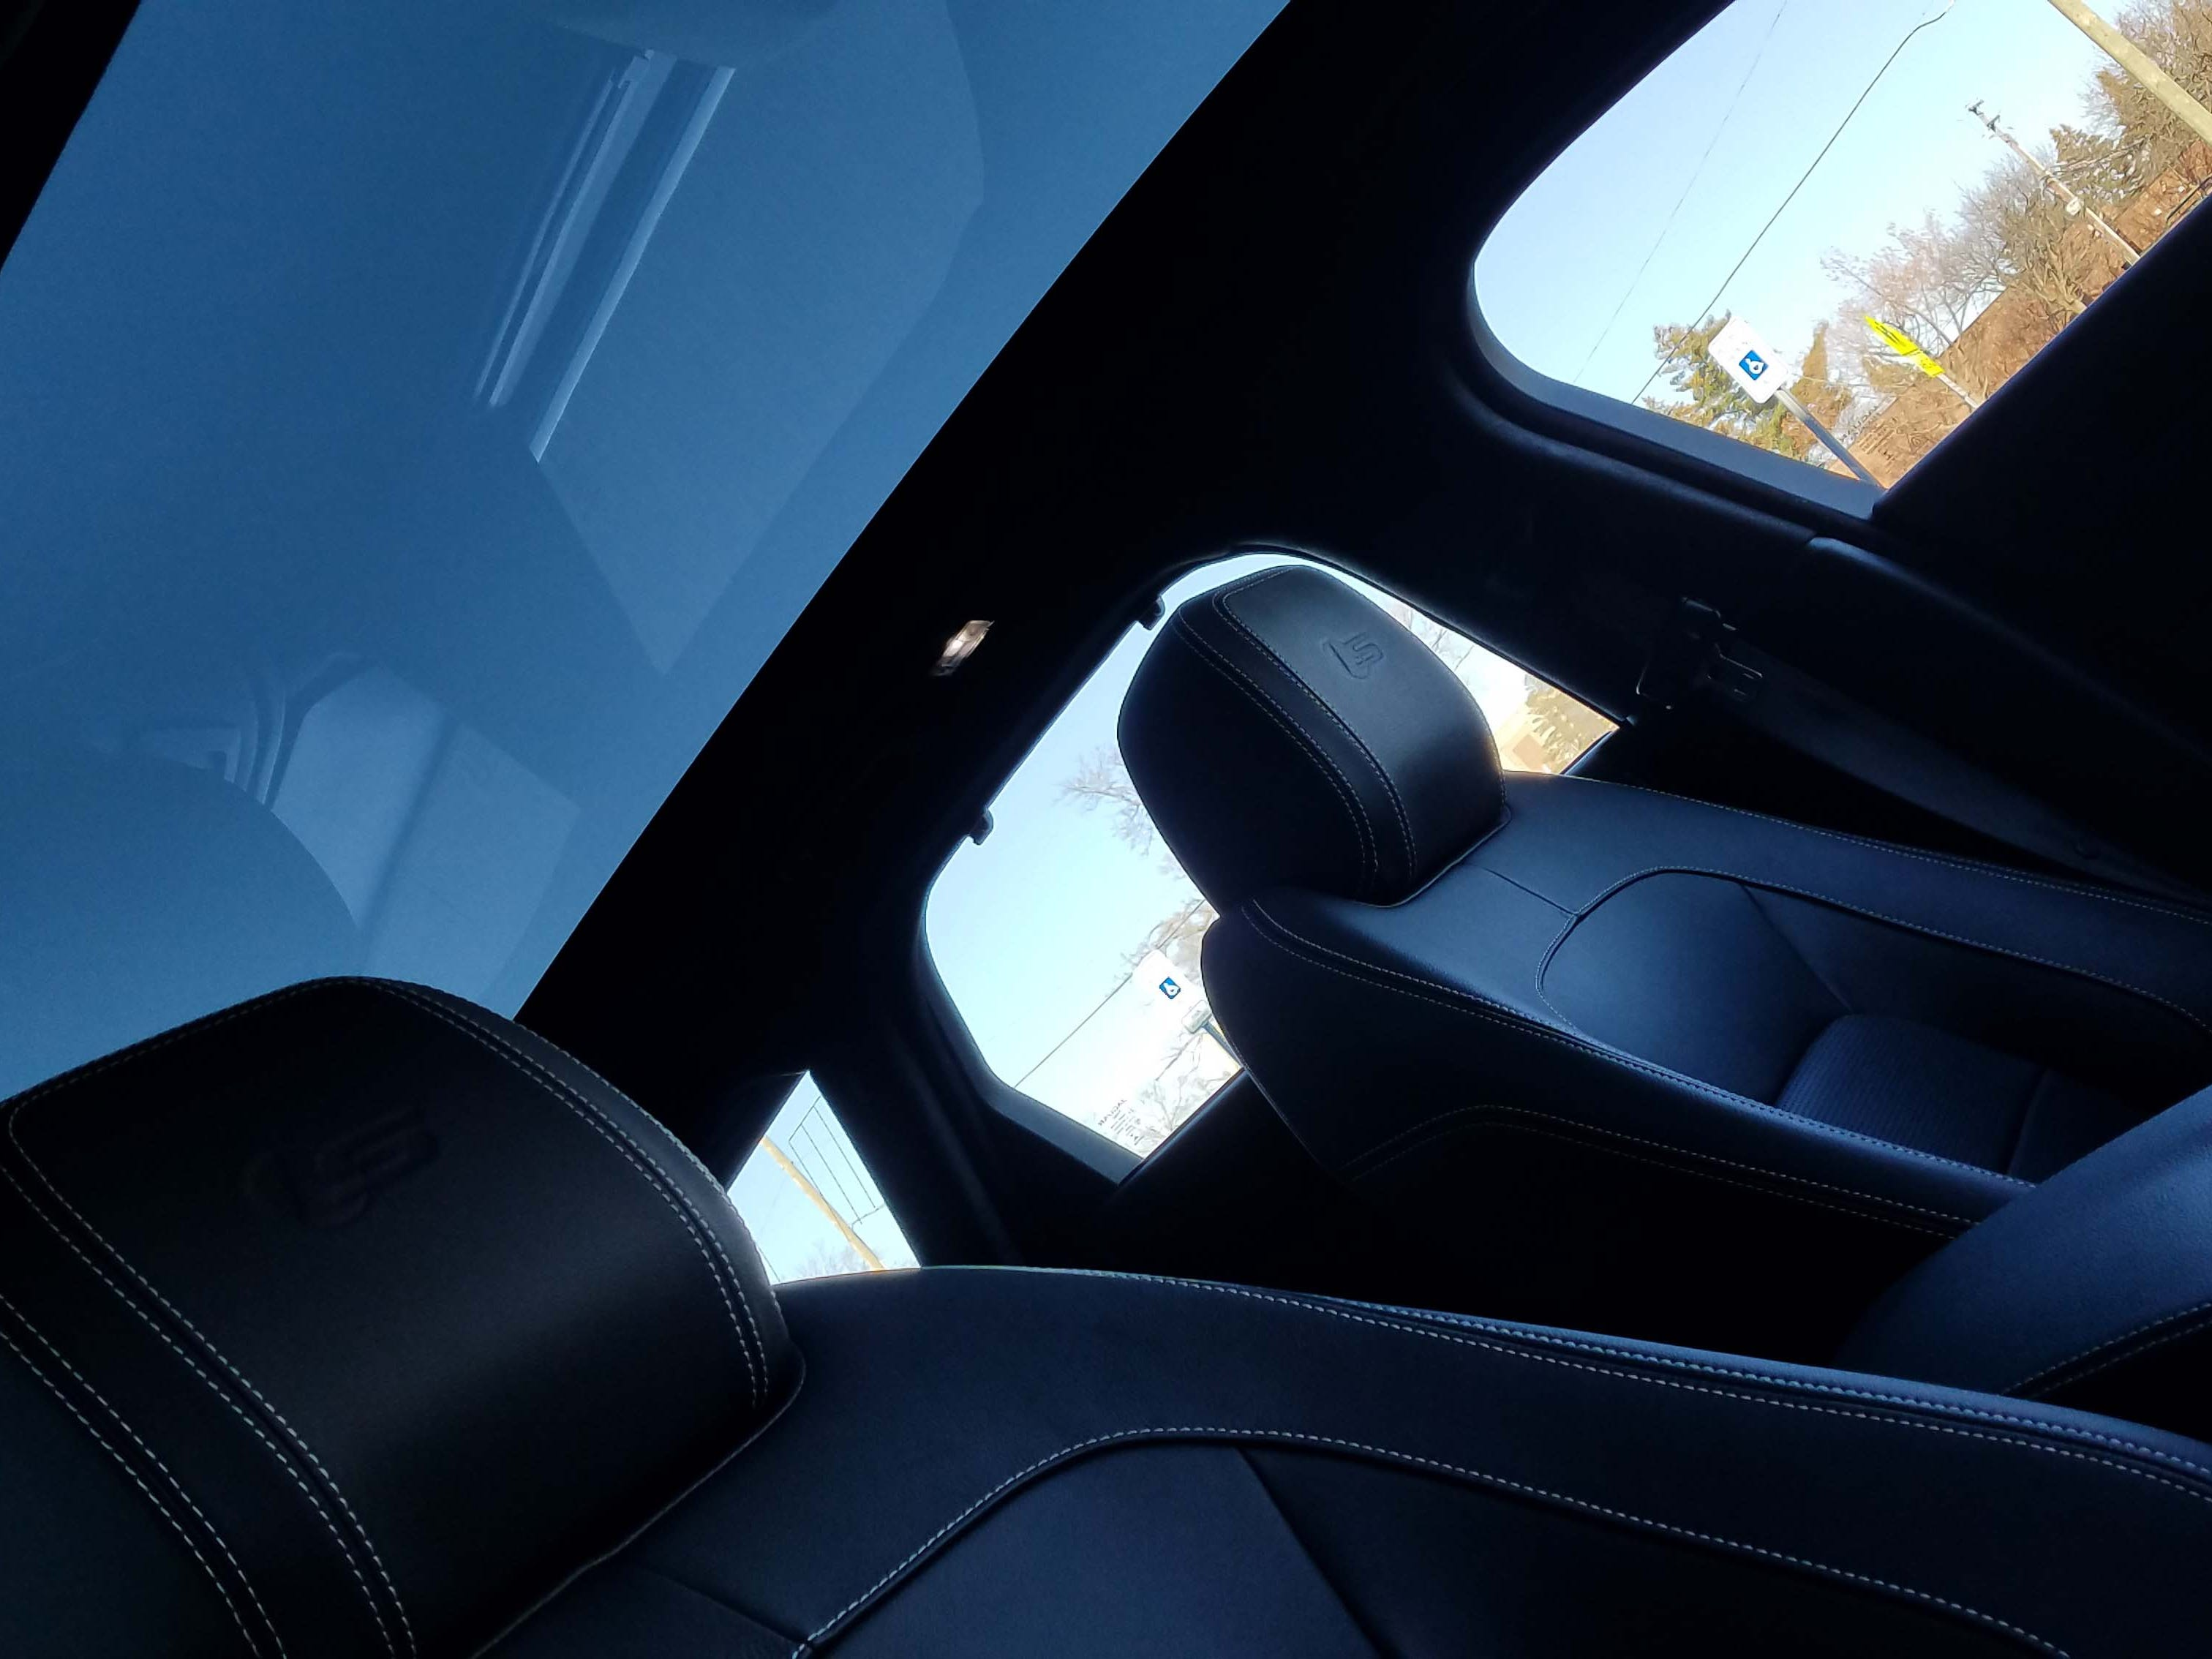 The Jaguar XF Sportbrake comes with a full-length moonroof and comfortable, bolstered seats.